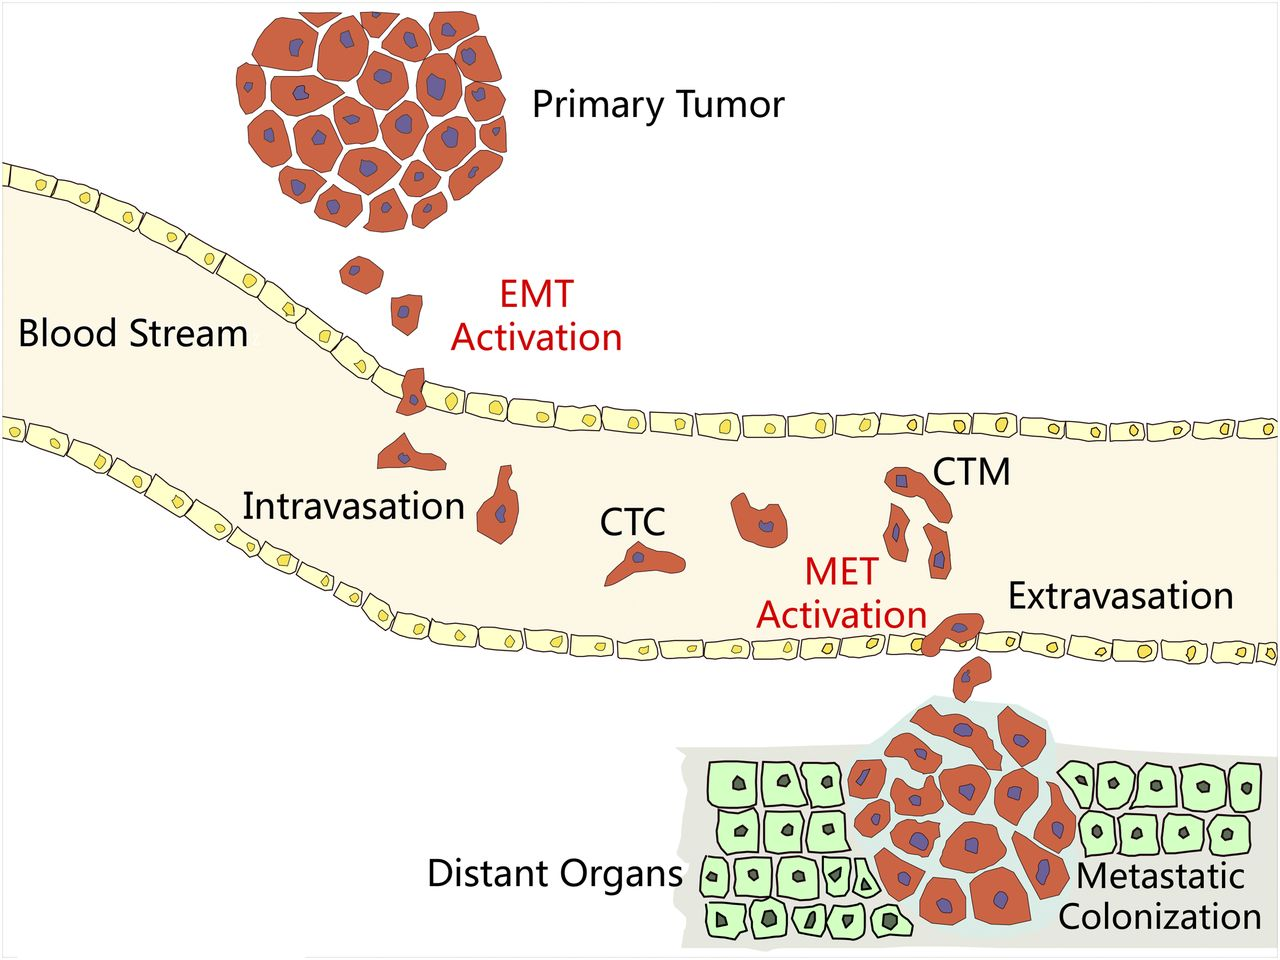 Clinical Applications of Circulating Tumor Cells in